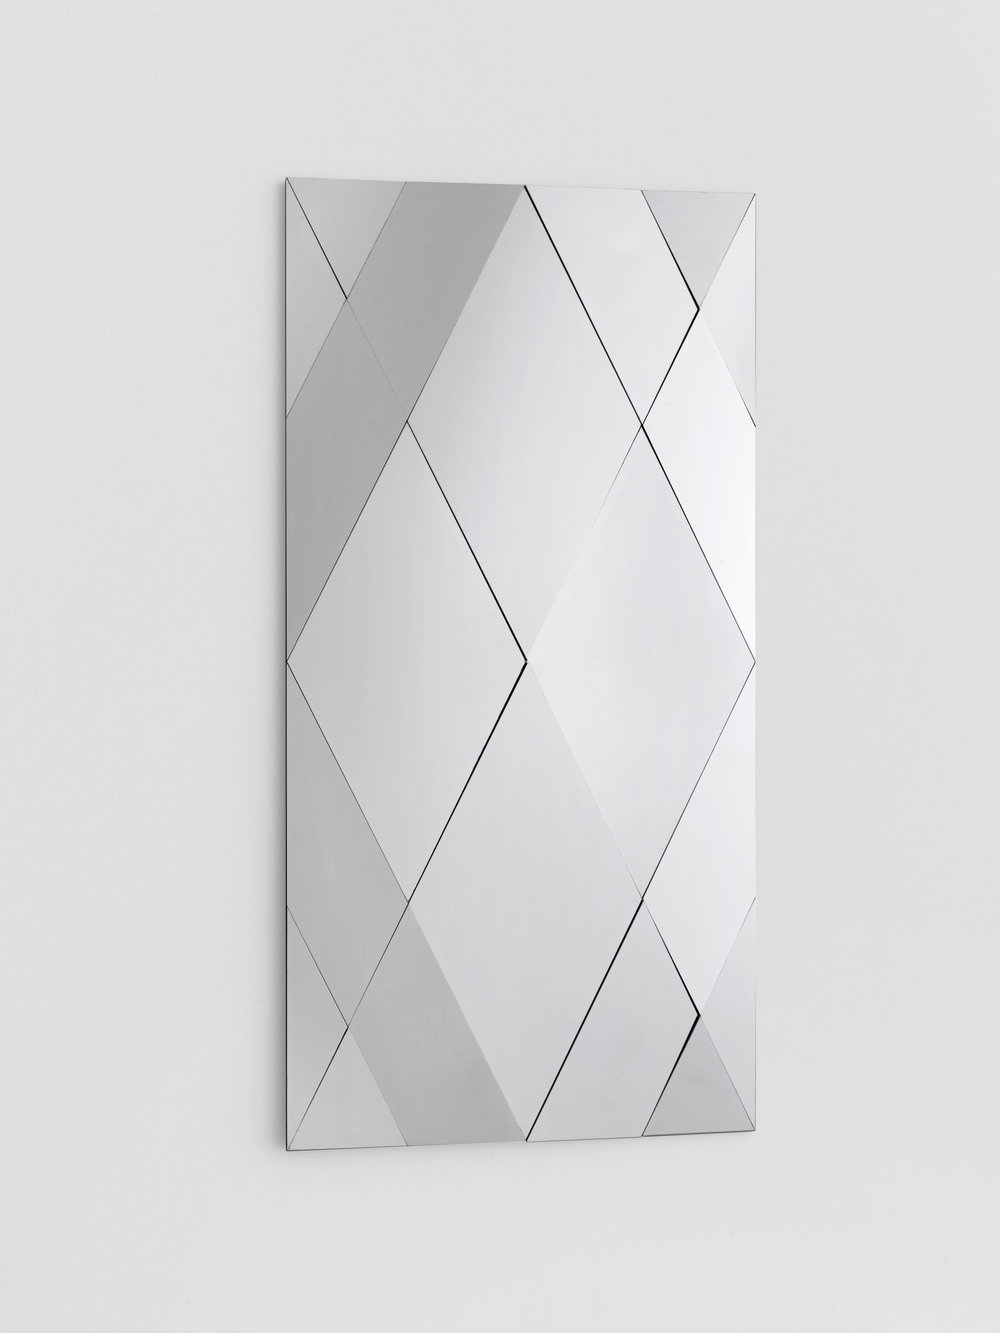 Untitled,  2015, Polished stainless steel, 40 x 80 cm